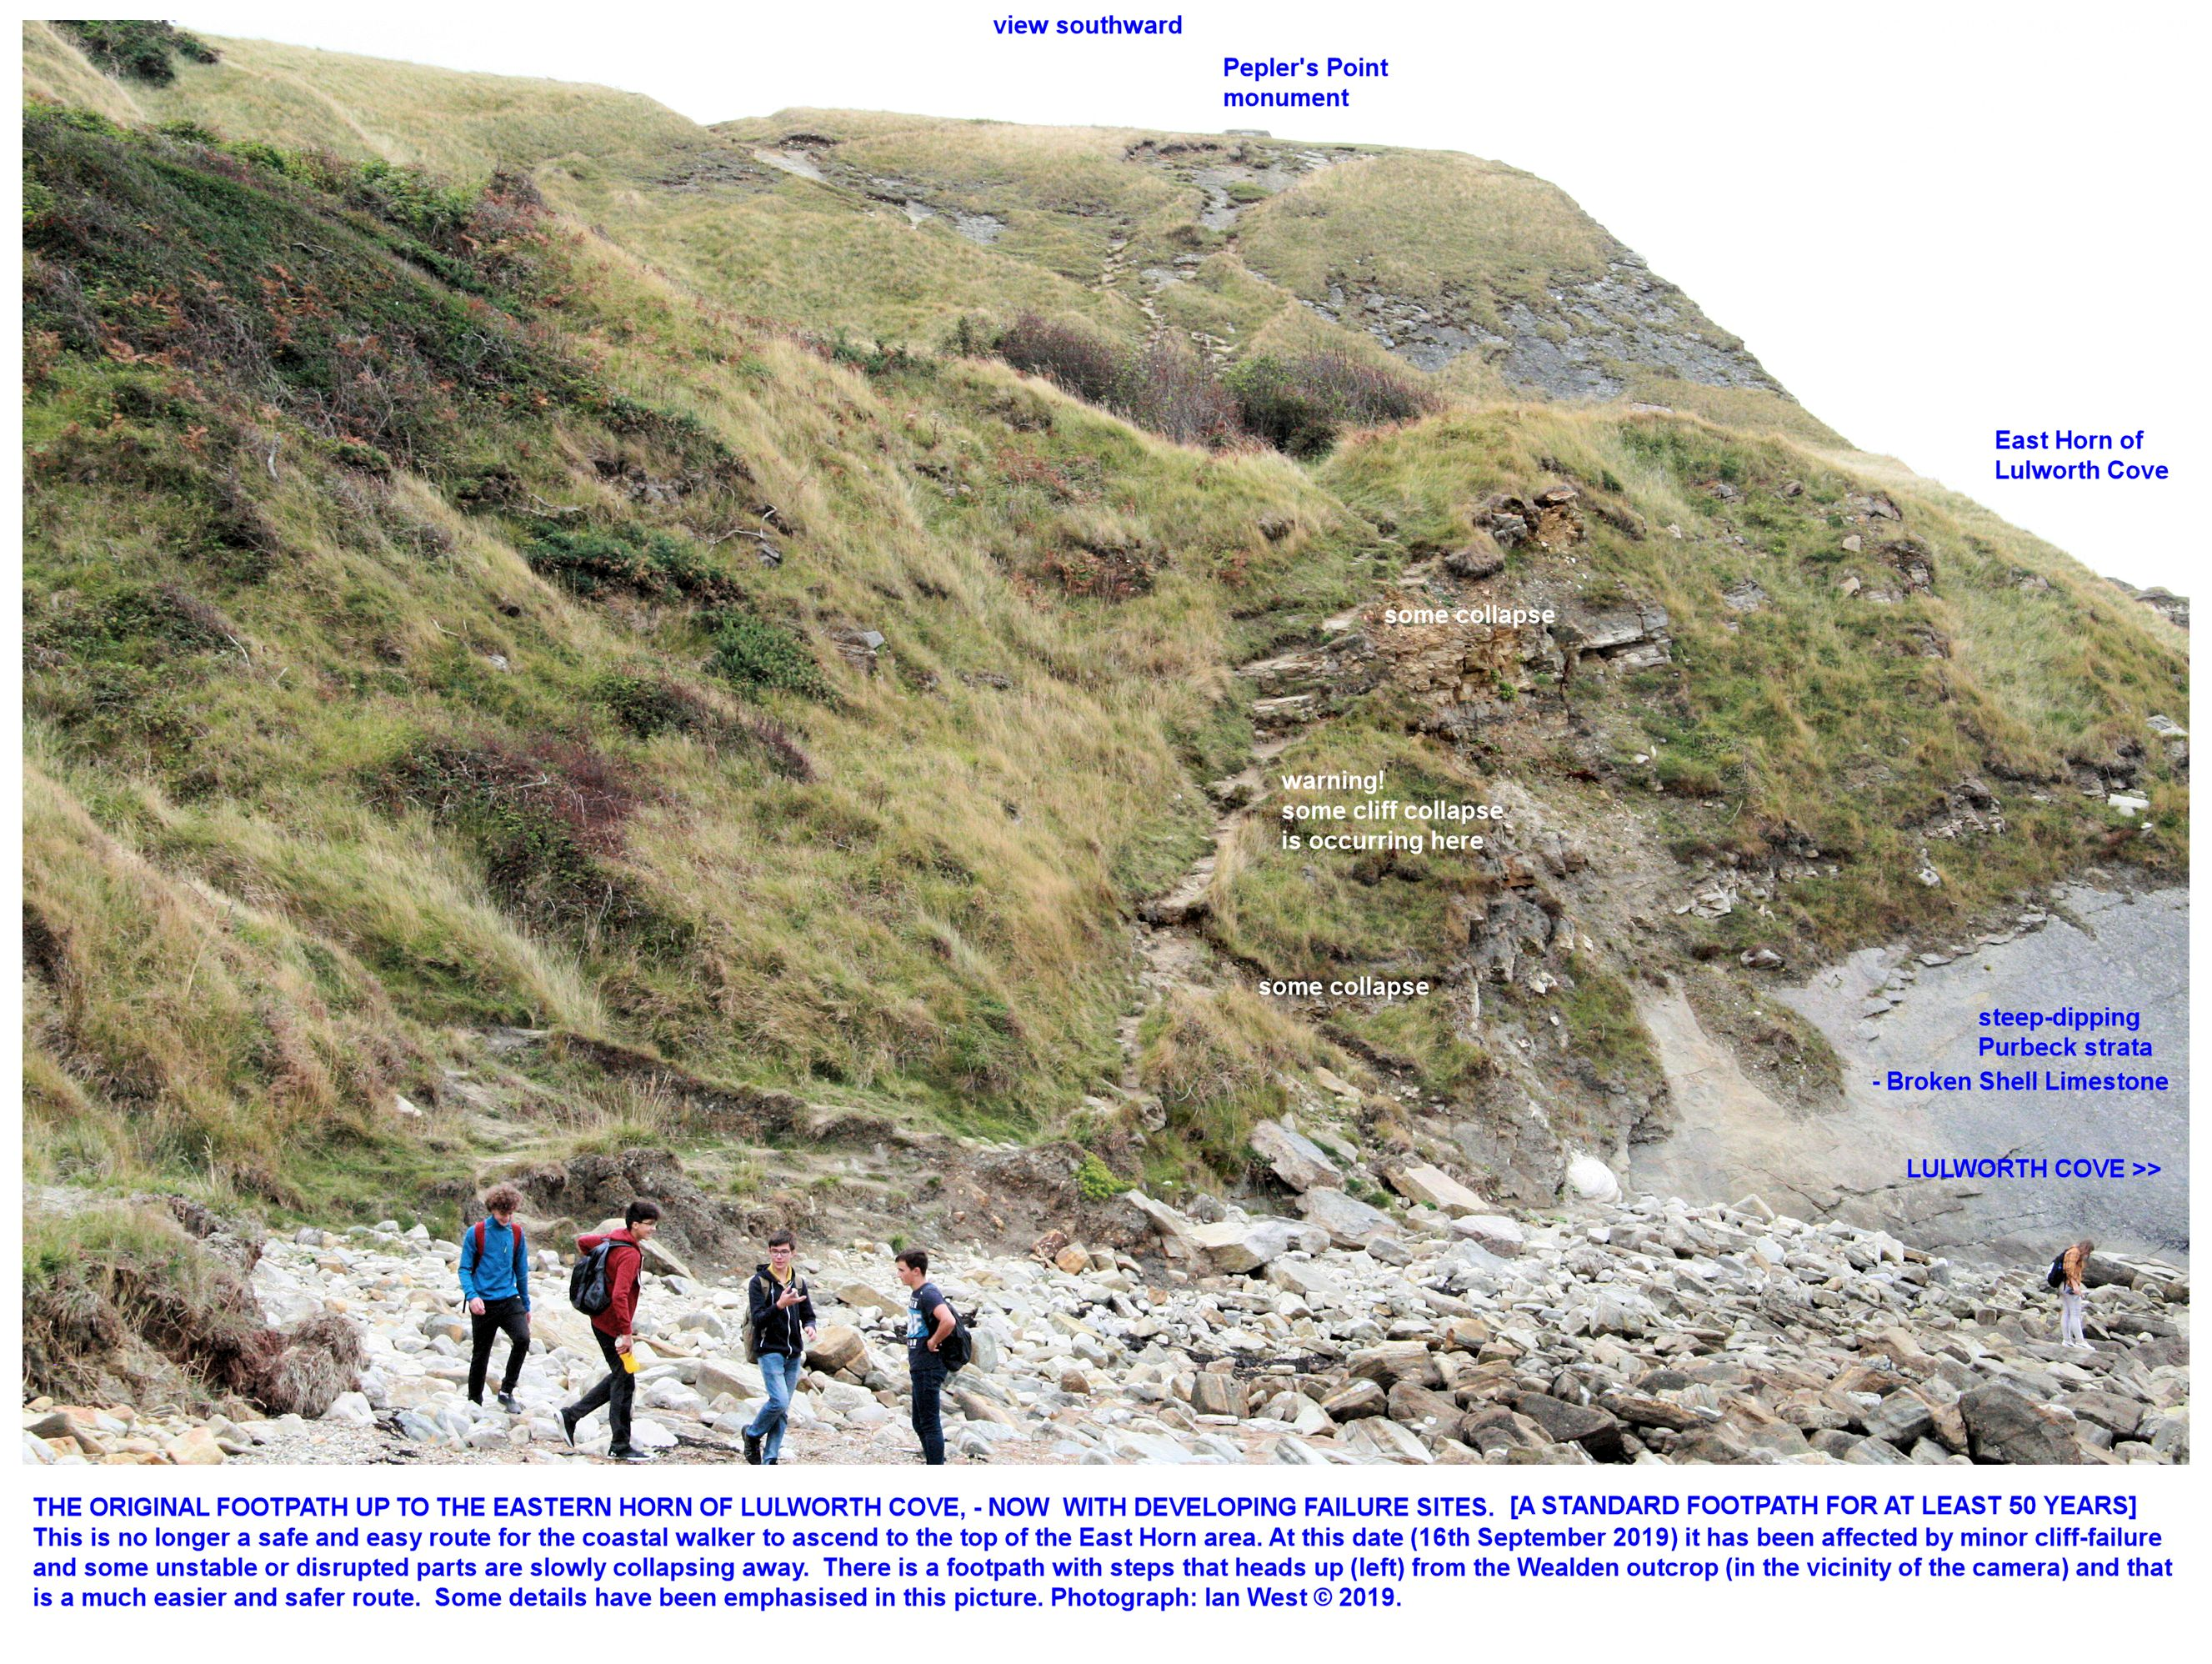 Incipient collapse of the footpath up East Over, Lulworth Cove, Dorset, 16th September 2019